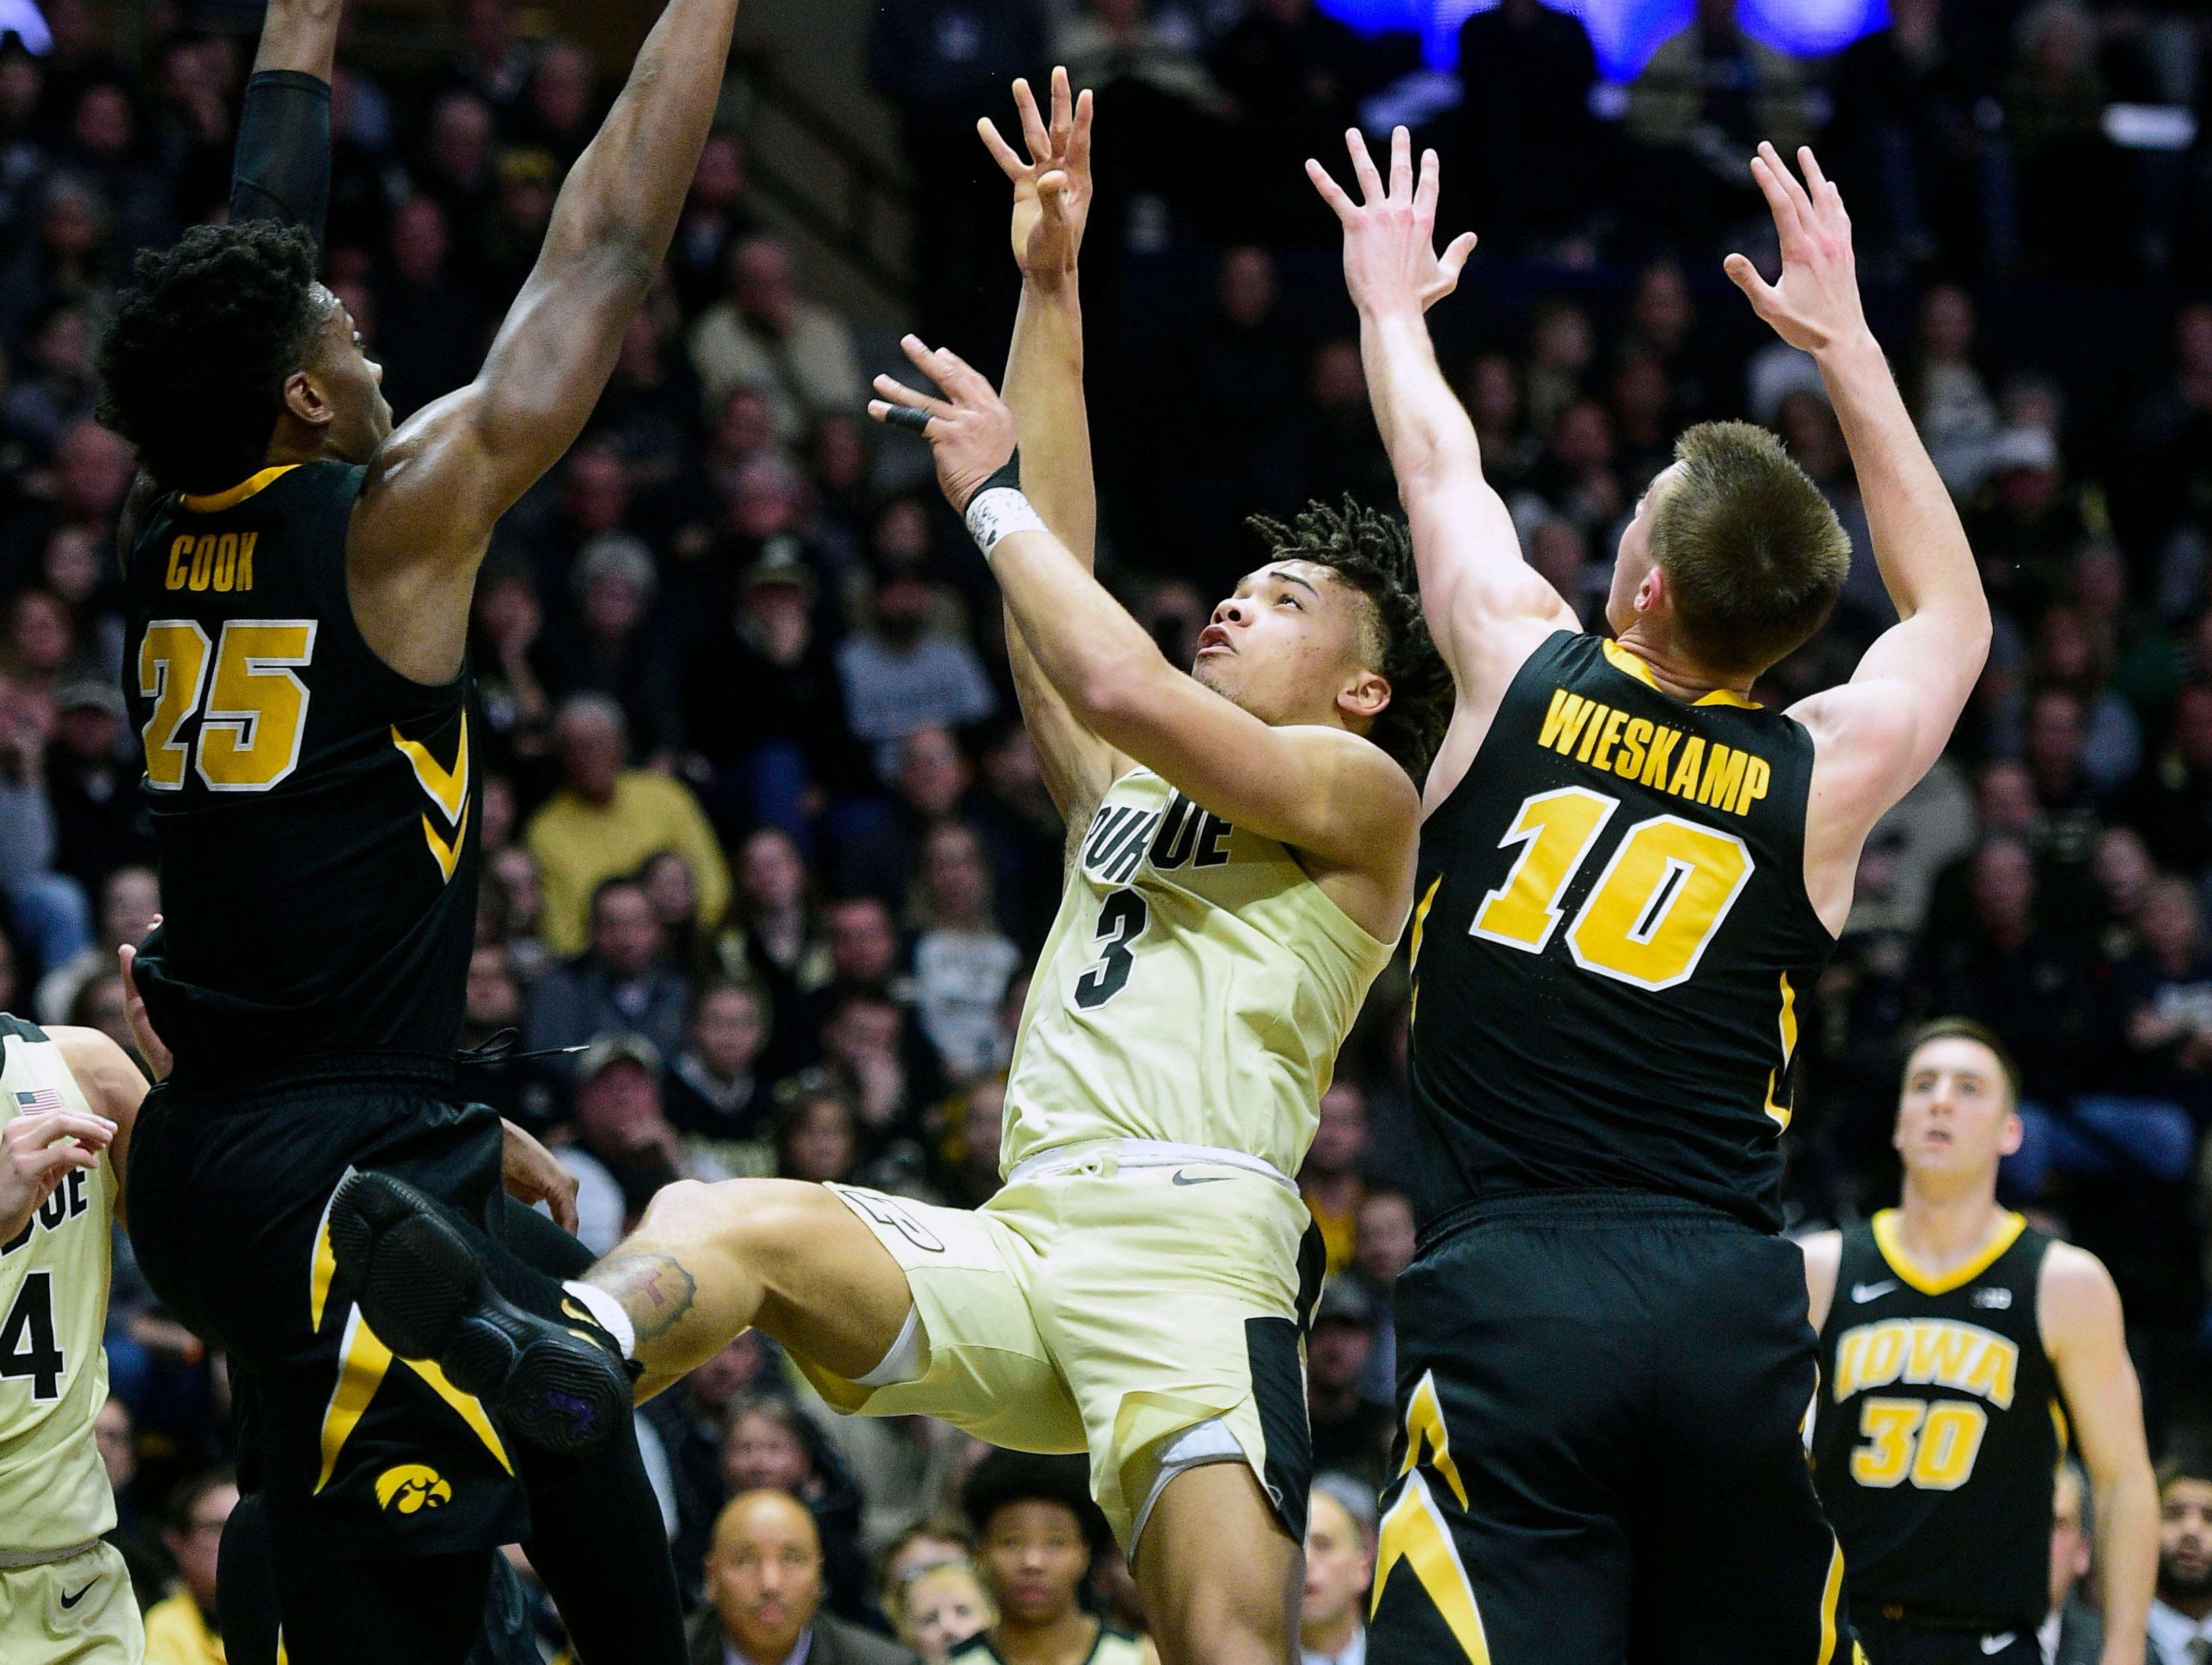 Jan 3, 2019; West Lafayette, IN, USA; Purdue Boilermakers   guard Carsen Edwards (3) goes up to the basket against  Iowa Hawkeyes guard Tyler Cook (25) and Iowa Hawkeyes guard Joe Weiskamp (10)  in the second half at Mackey Arena. Mandatory Credit: Thomas J. Russo-USA TODAY Sports